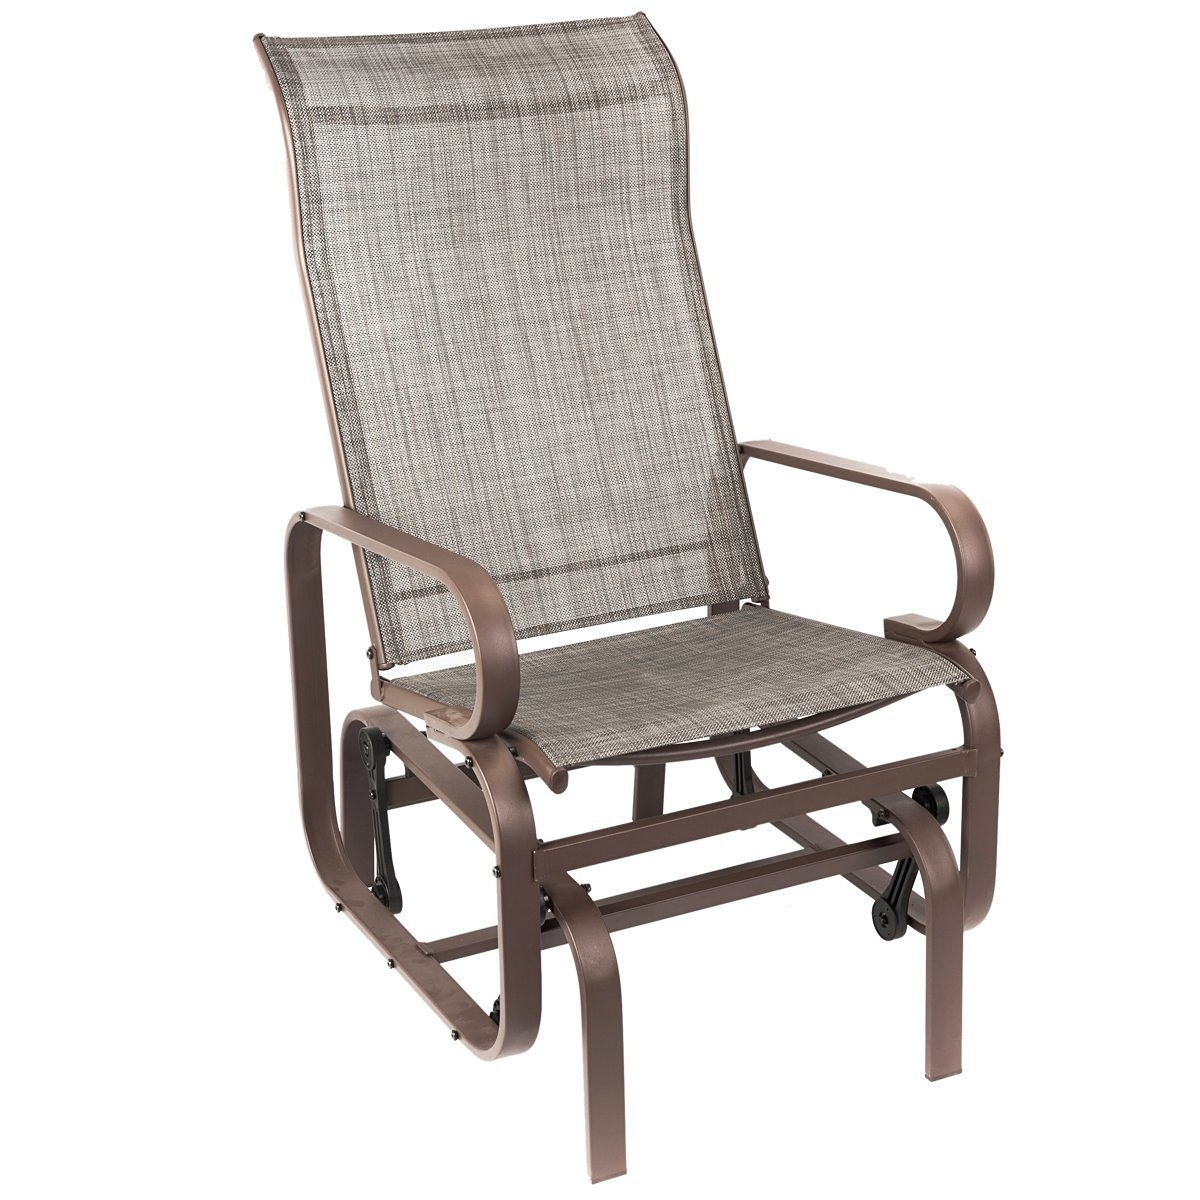 Outdoor Furniture Rocking Chair – Outdoor Designs Pertaining To Recent Patio Furniture Rocking Benches (View 11 of 20)